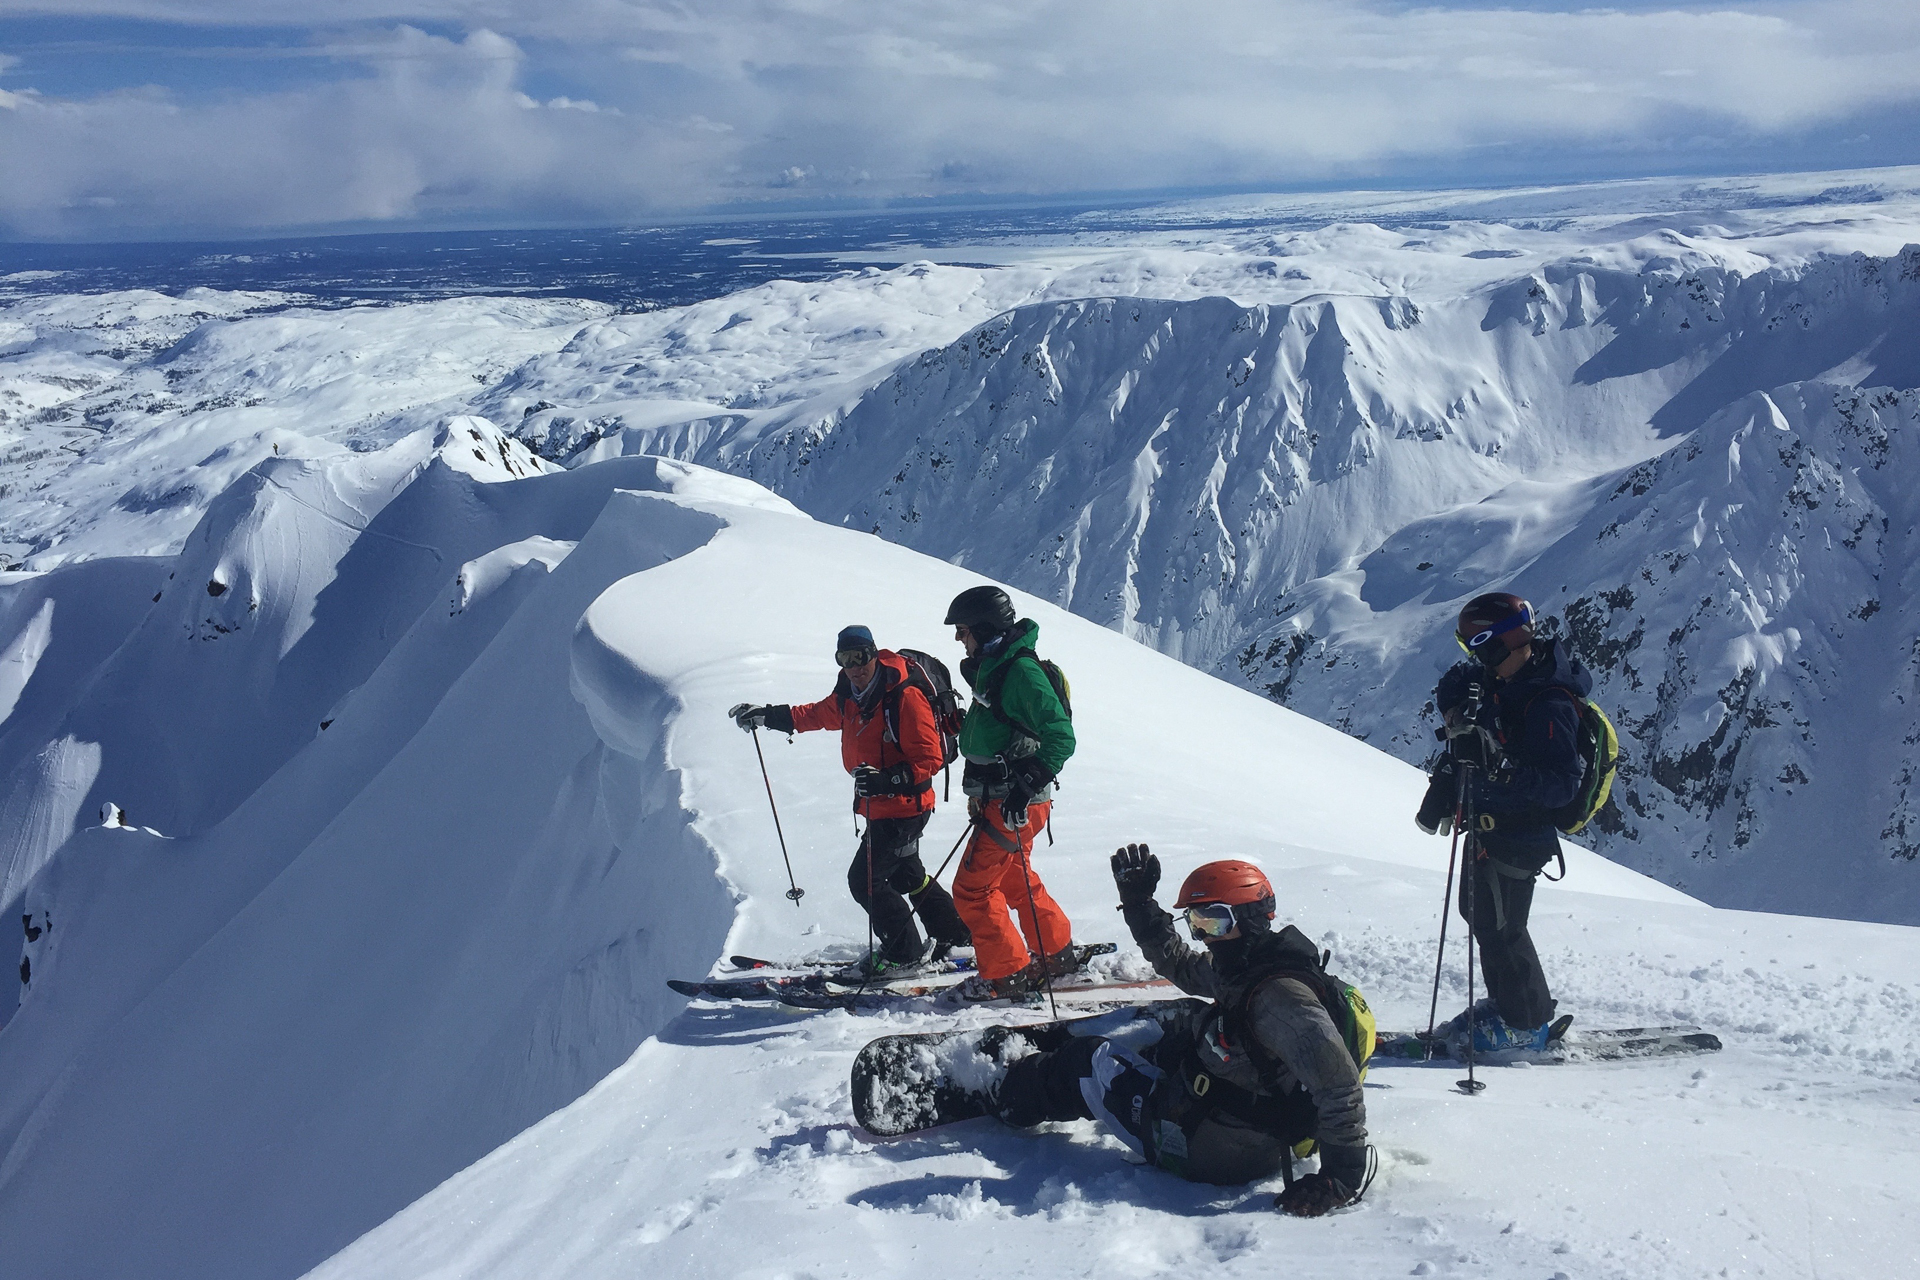 Moe, in the red jacket, guides in Alaska three months a year, and urges more people to educate themselves on backcountry safety basics before venturing beyond the gates. PHOTO: Mike Overcast